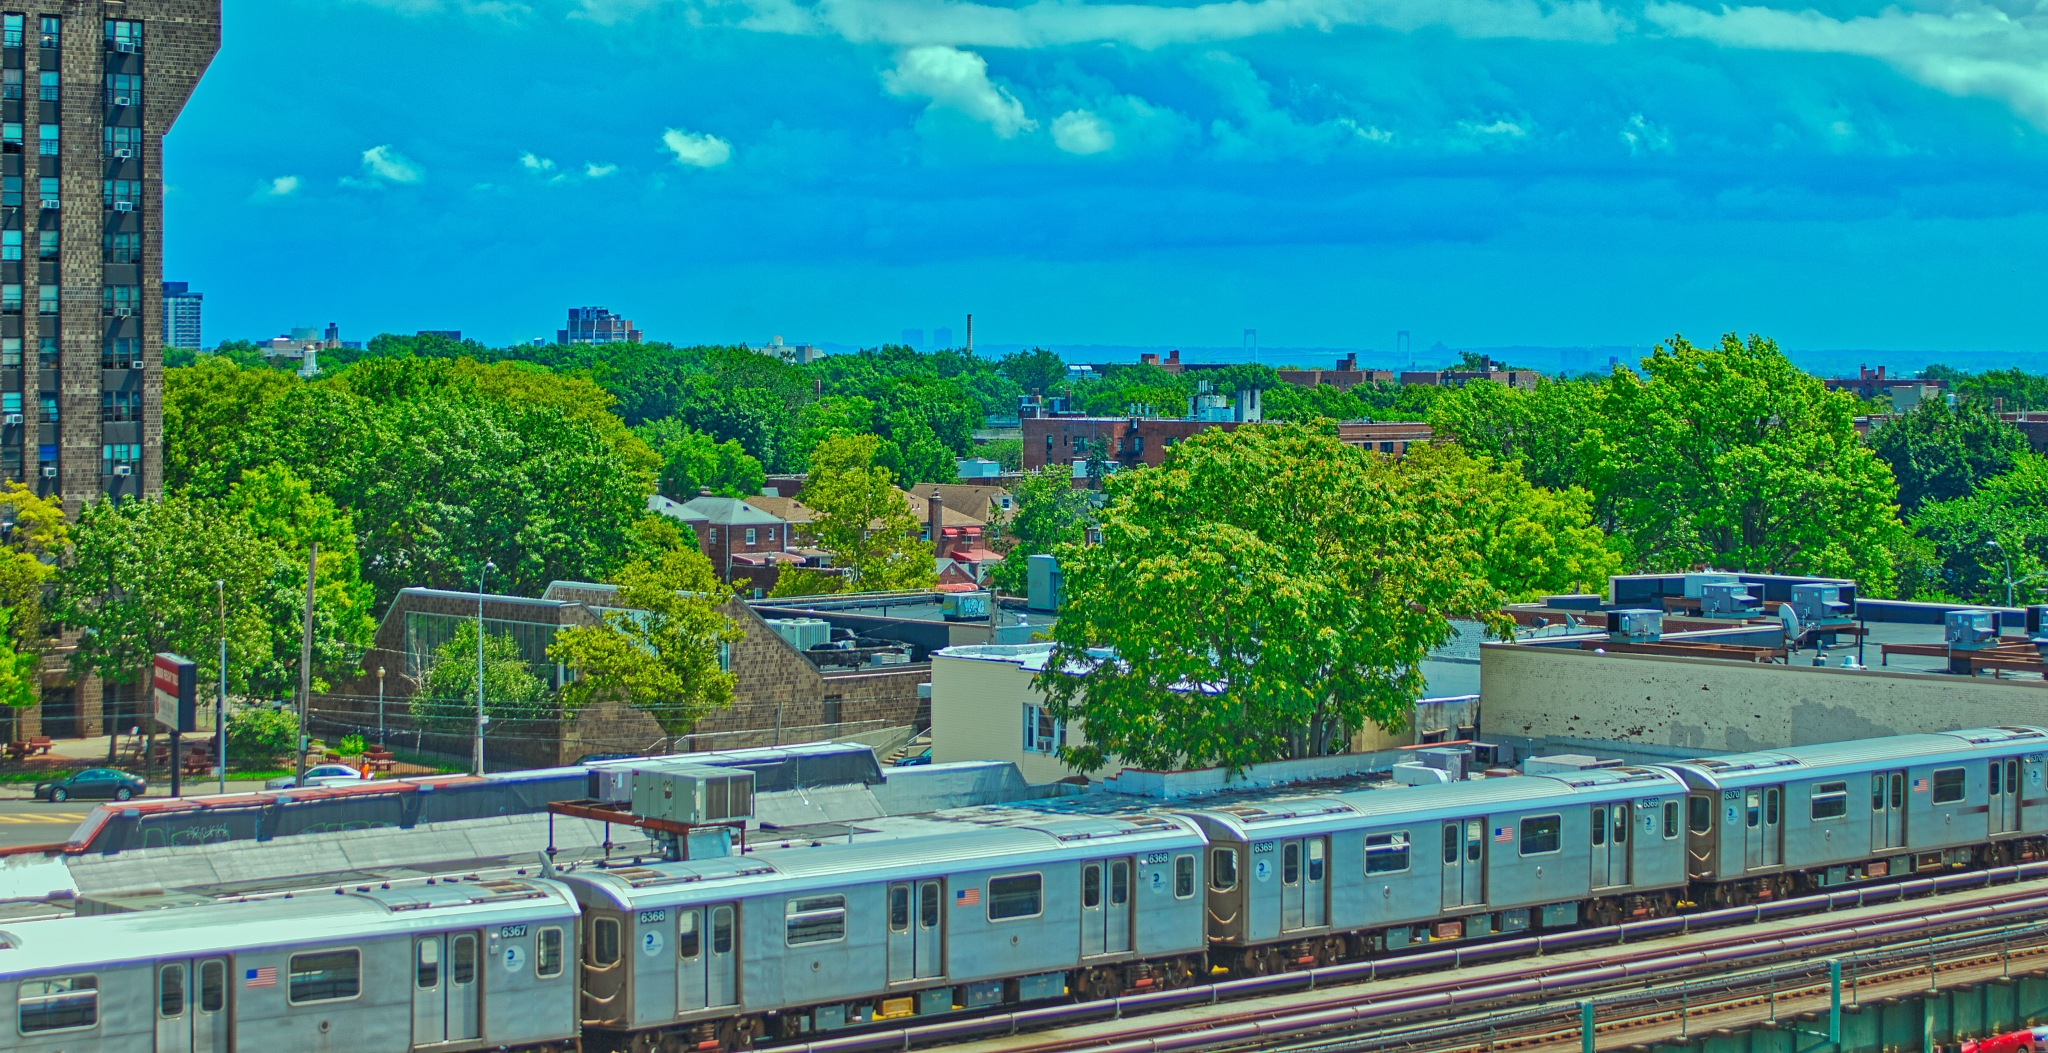 North East Bronx by WilSant